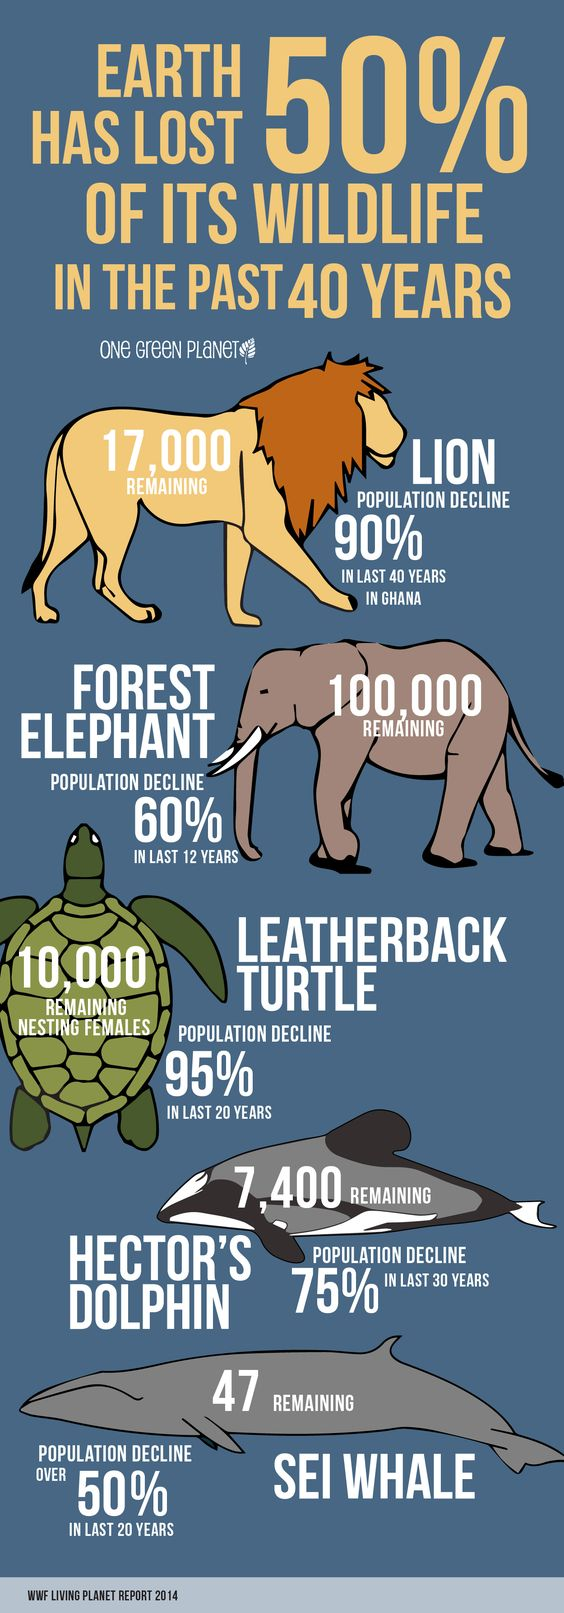 wildlife-facts.jpg